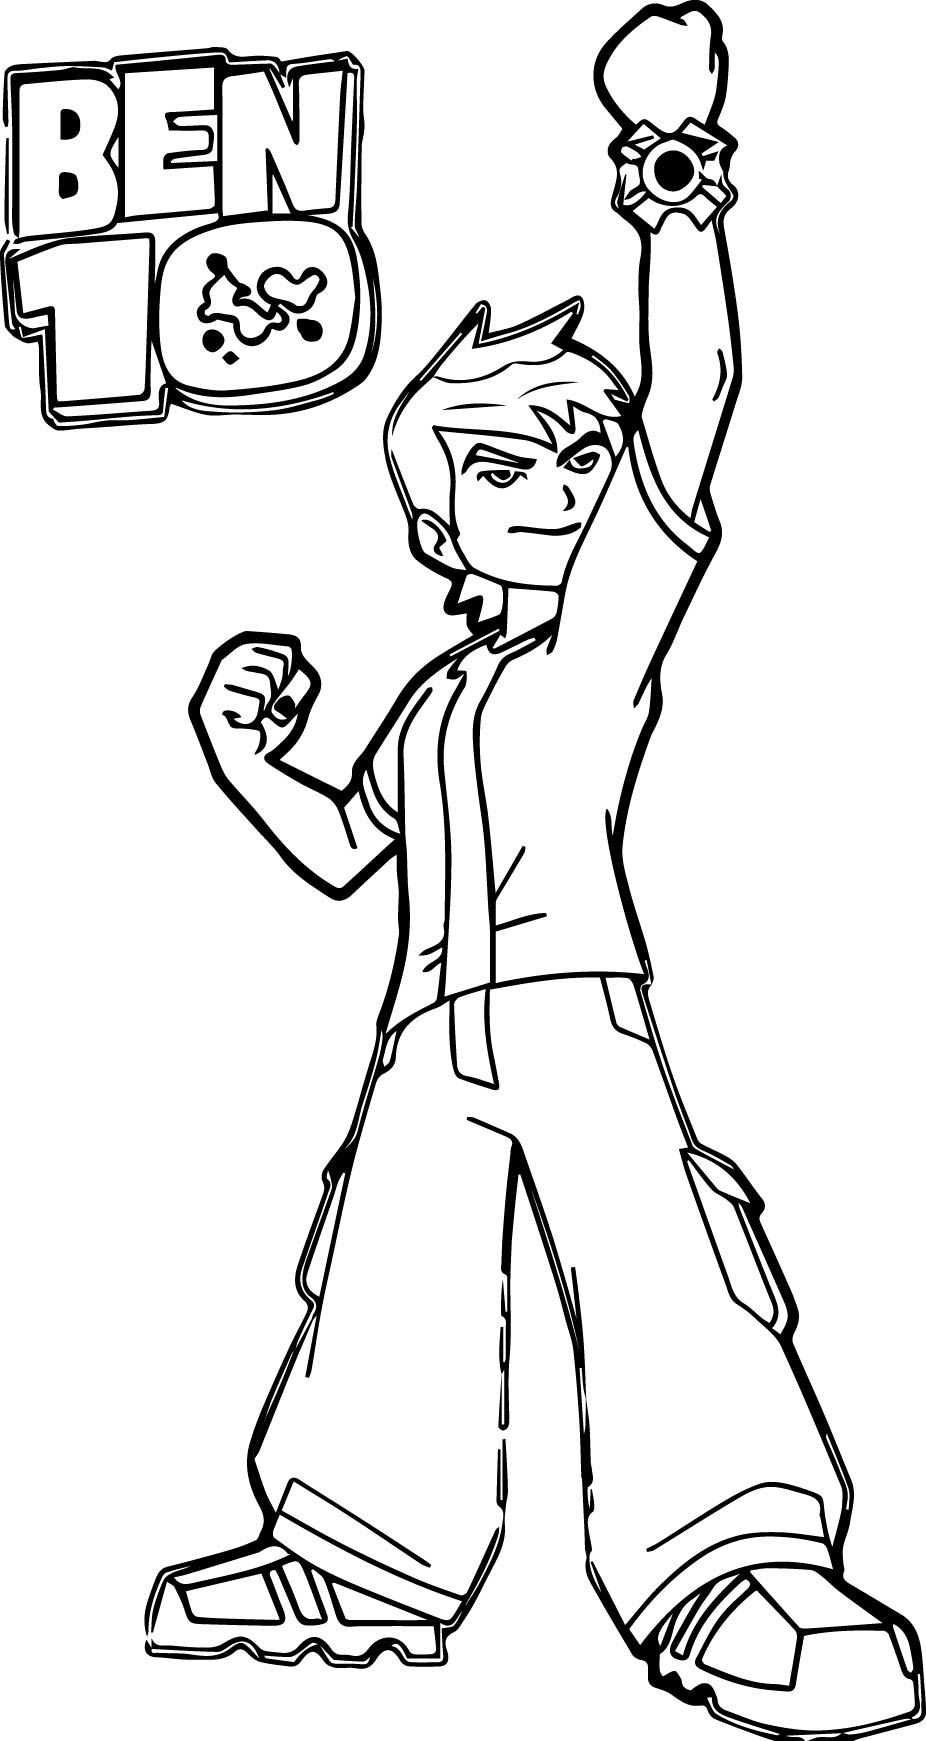 ben 1000 coloring pages - photo#24